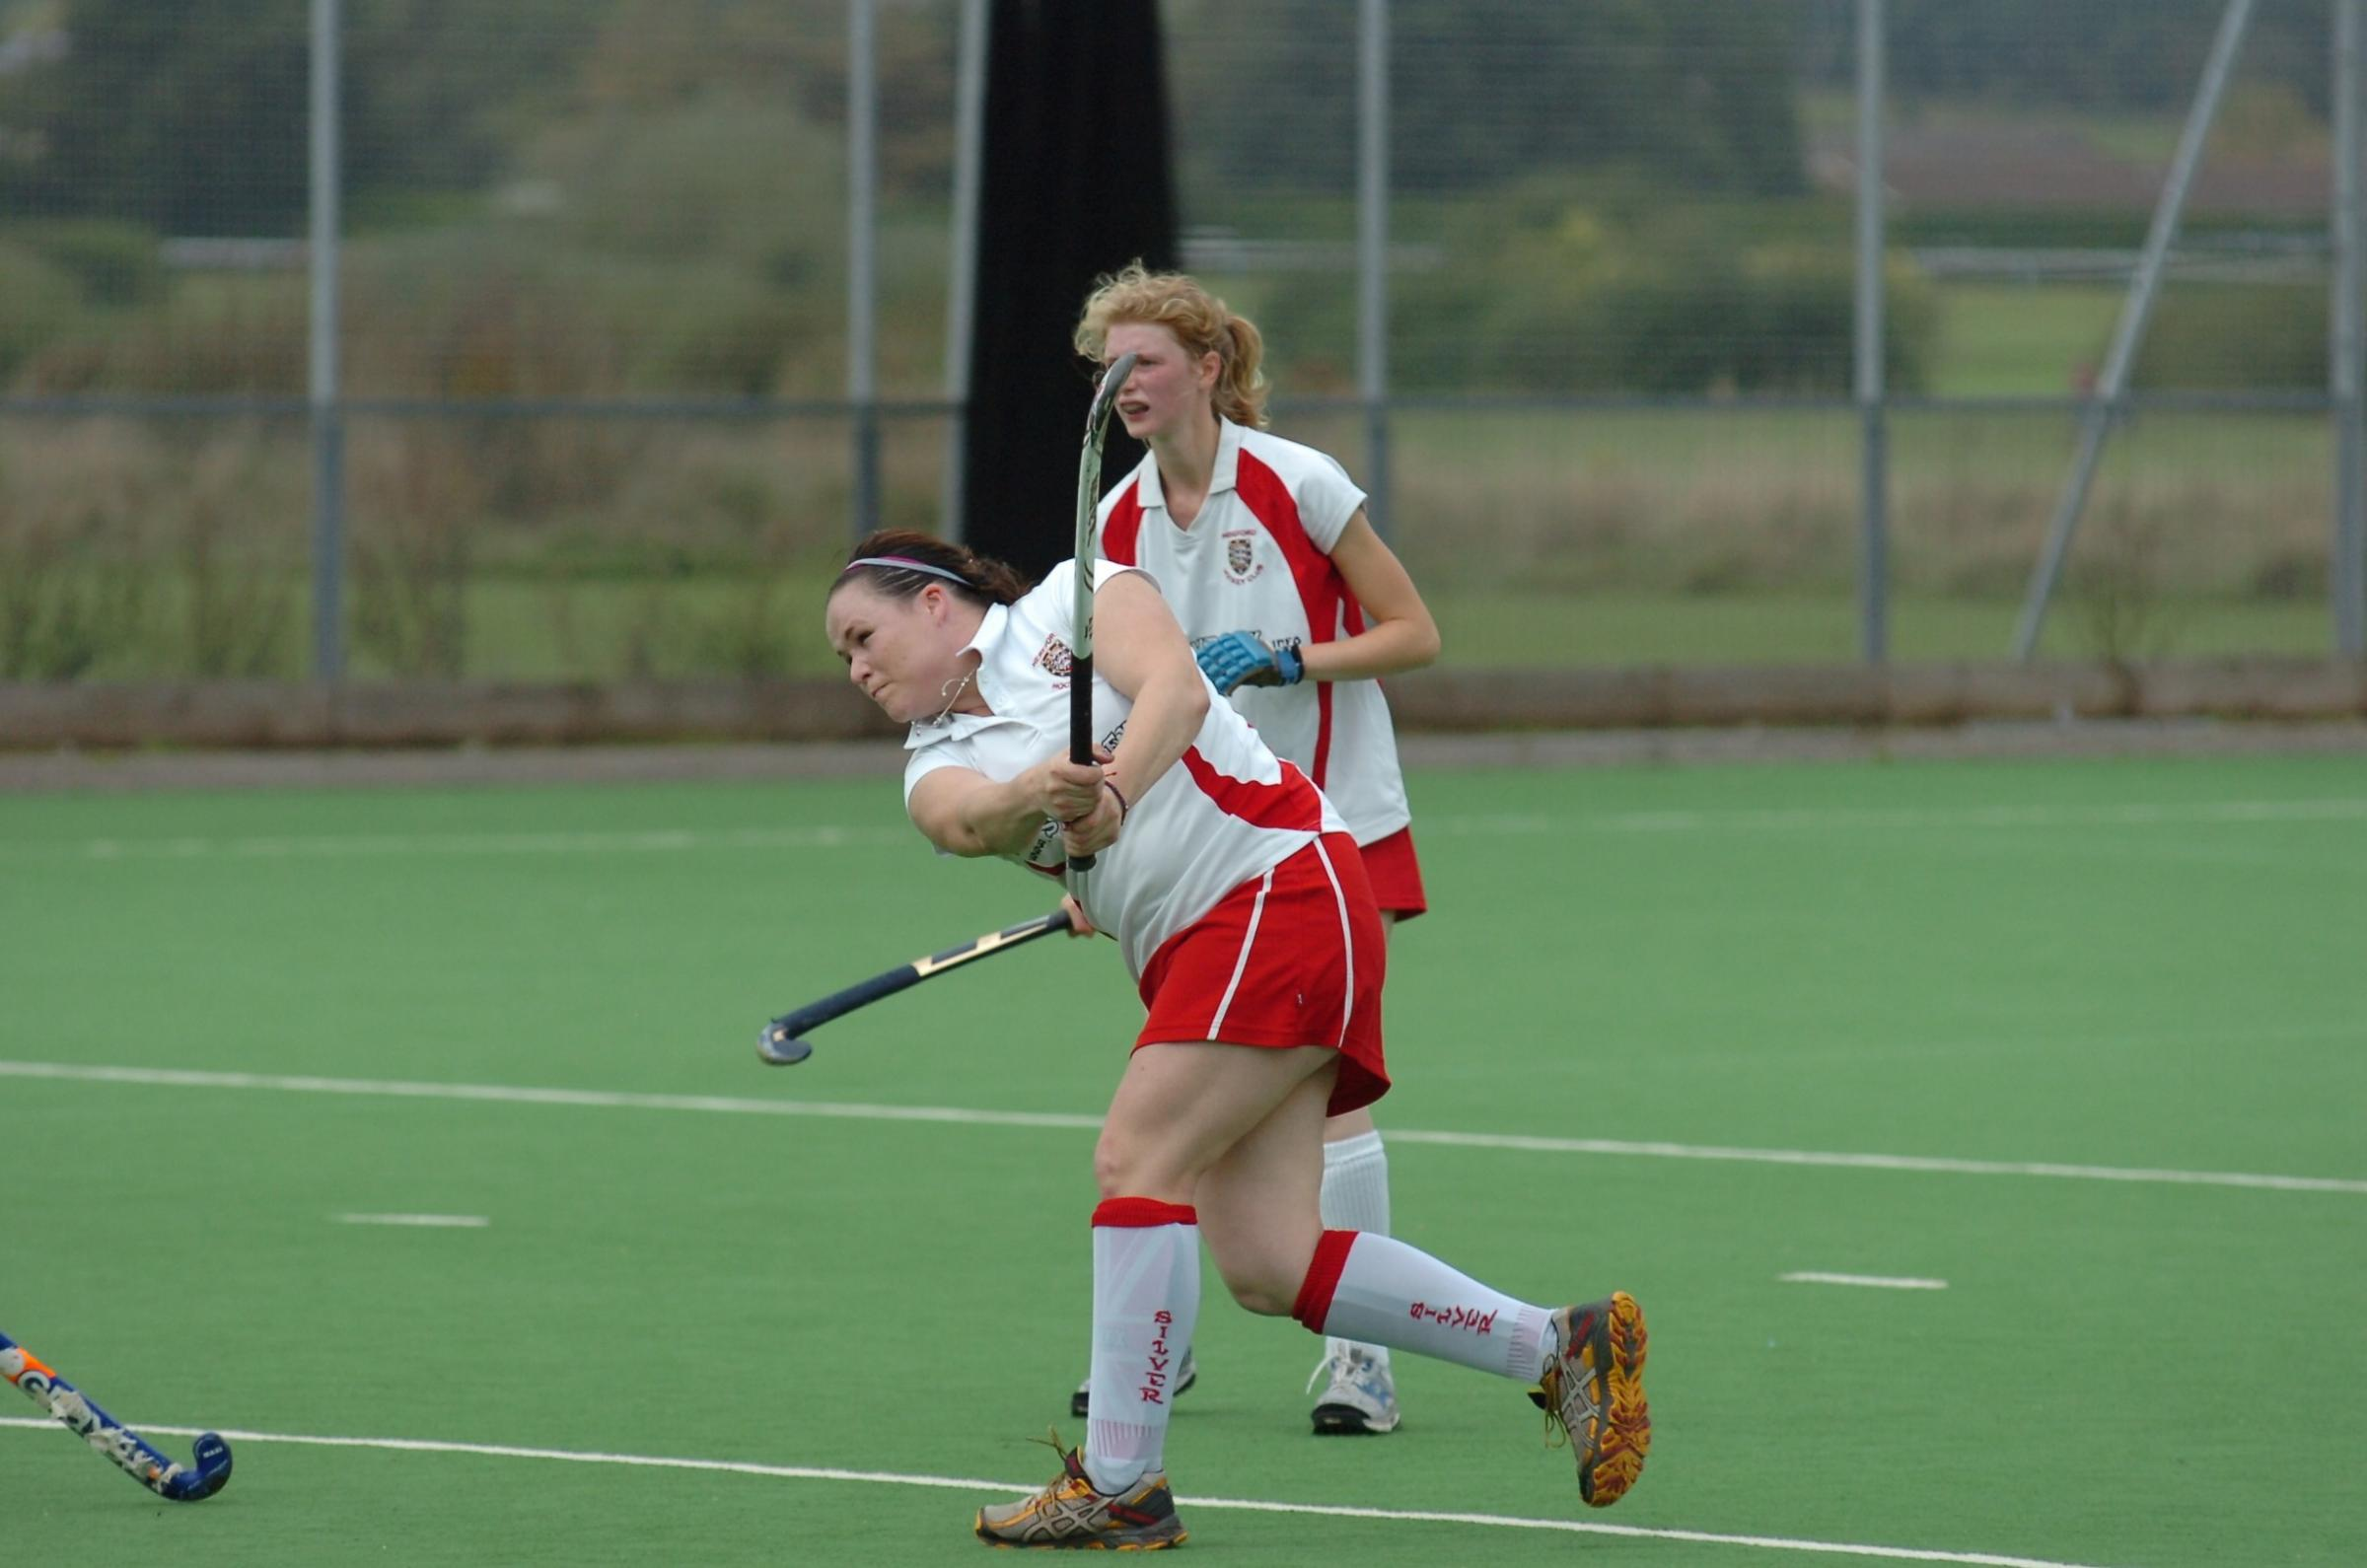 Erica Rogers, in action here in a previous game, scored a fine goal for Hereford 2nds against Bourton & Sherborne